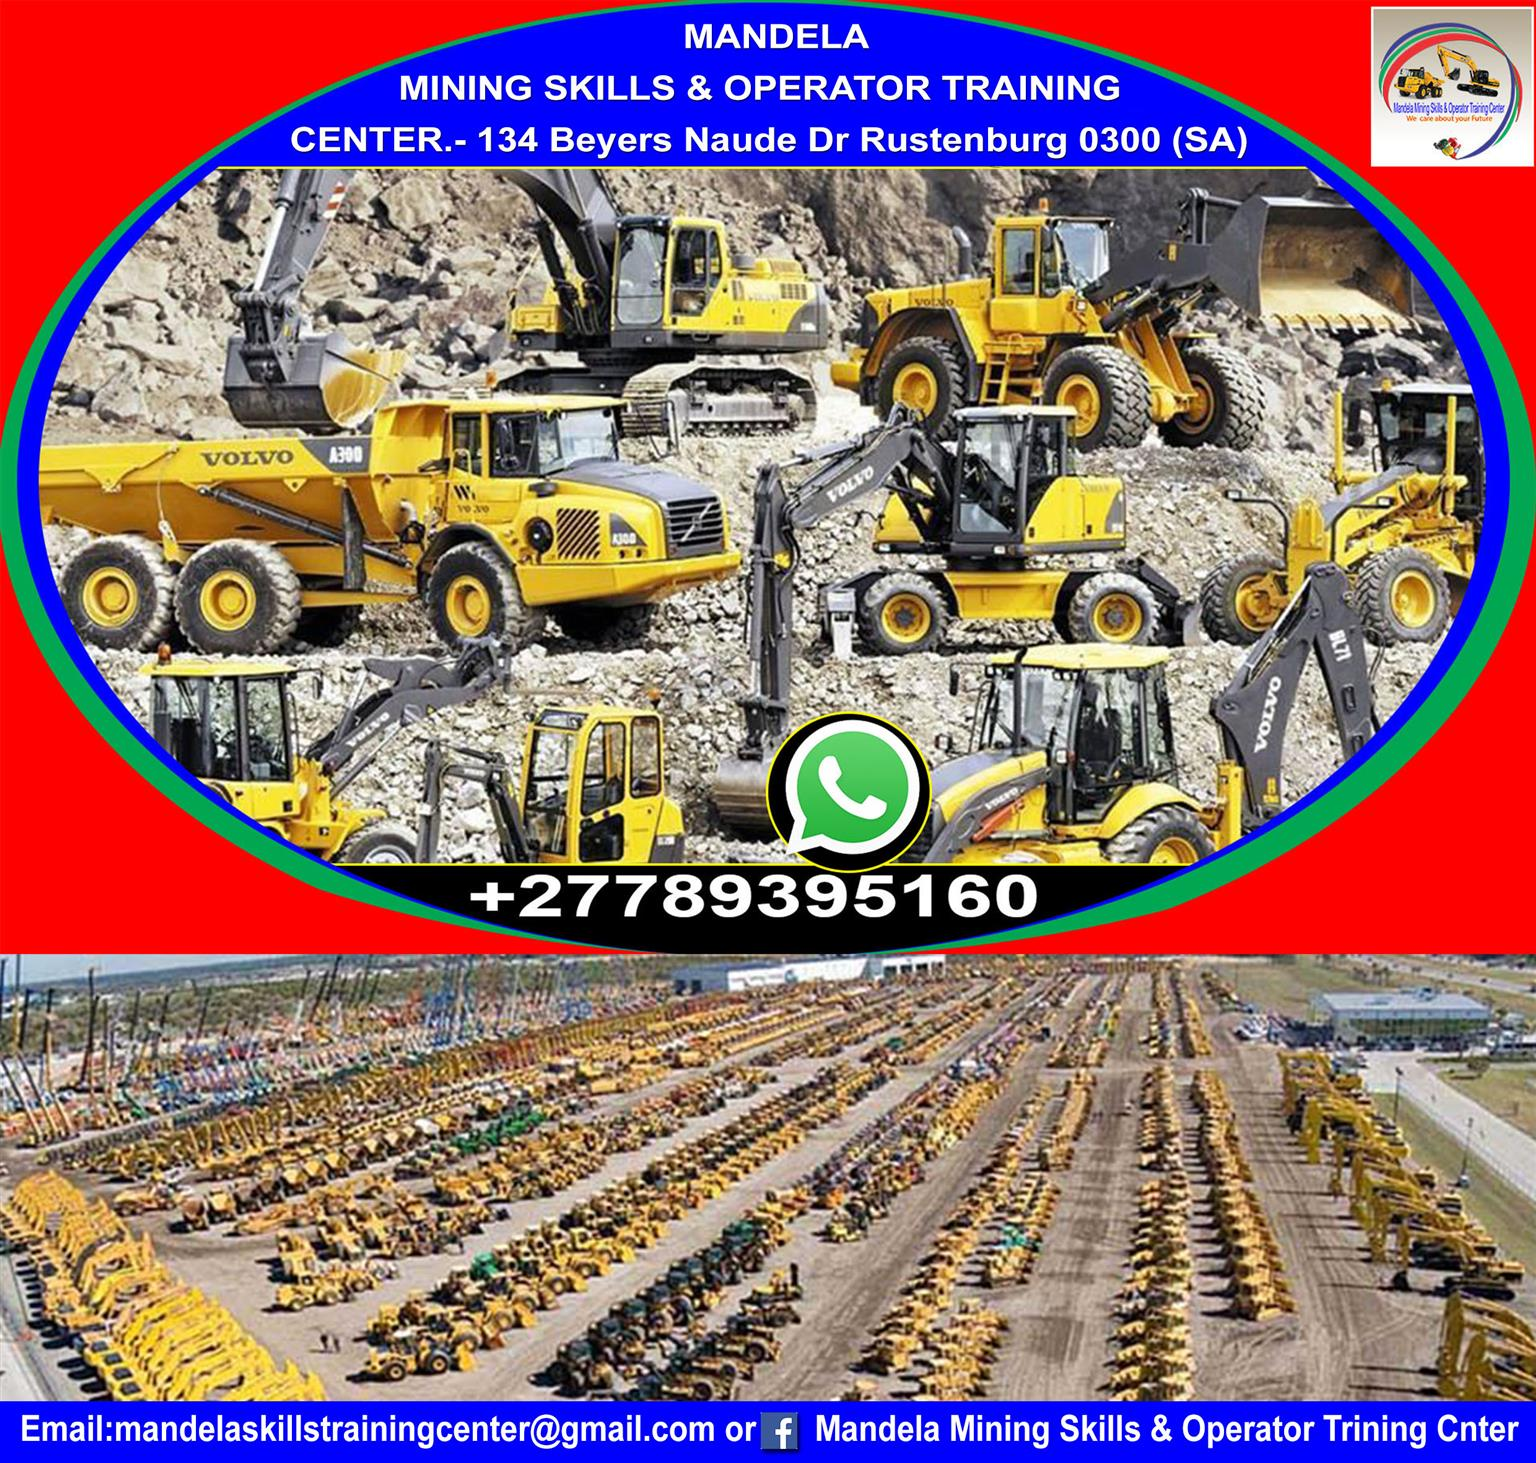 The Best Mining Skills Training Center of Dump Truck,TLB,FEL,Forklift,Excavator,Boilermaker Drillrig,Lhd Scoop etc